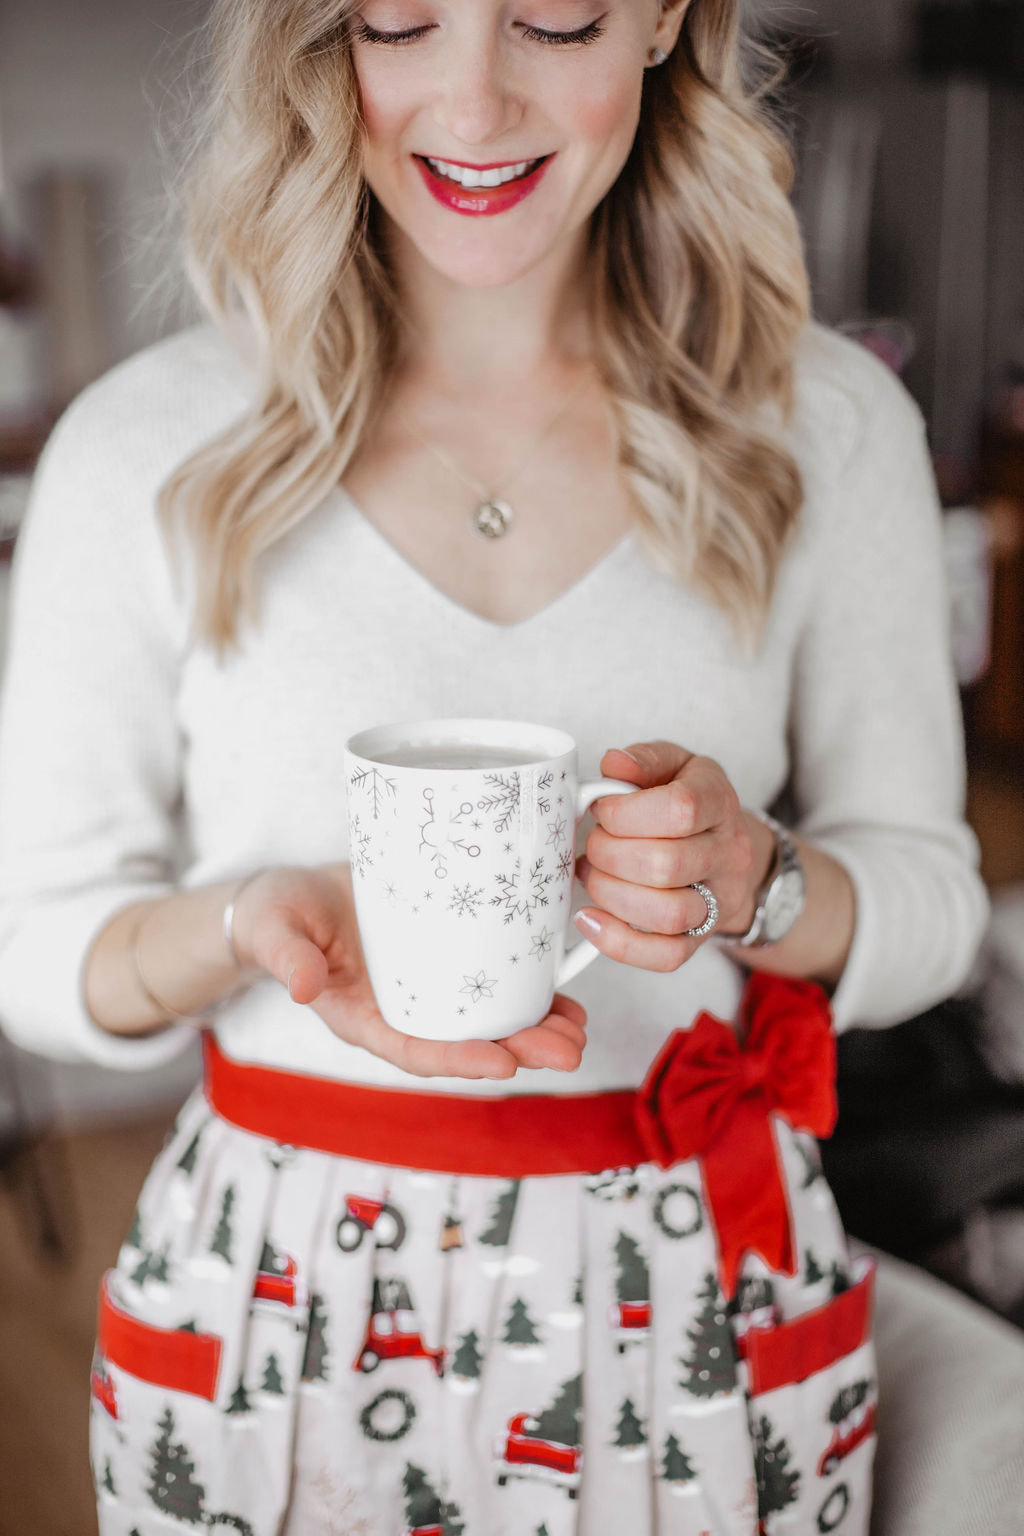 Hot Chocolate in A Festive Mug From Kitchen Stuff Plus